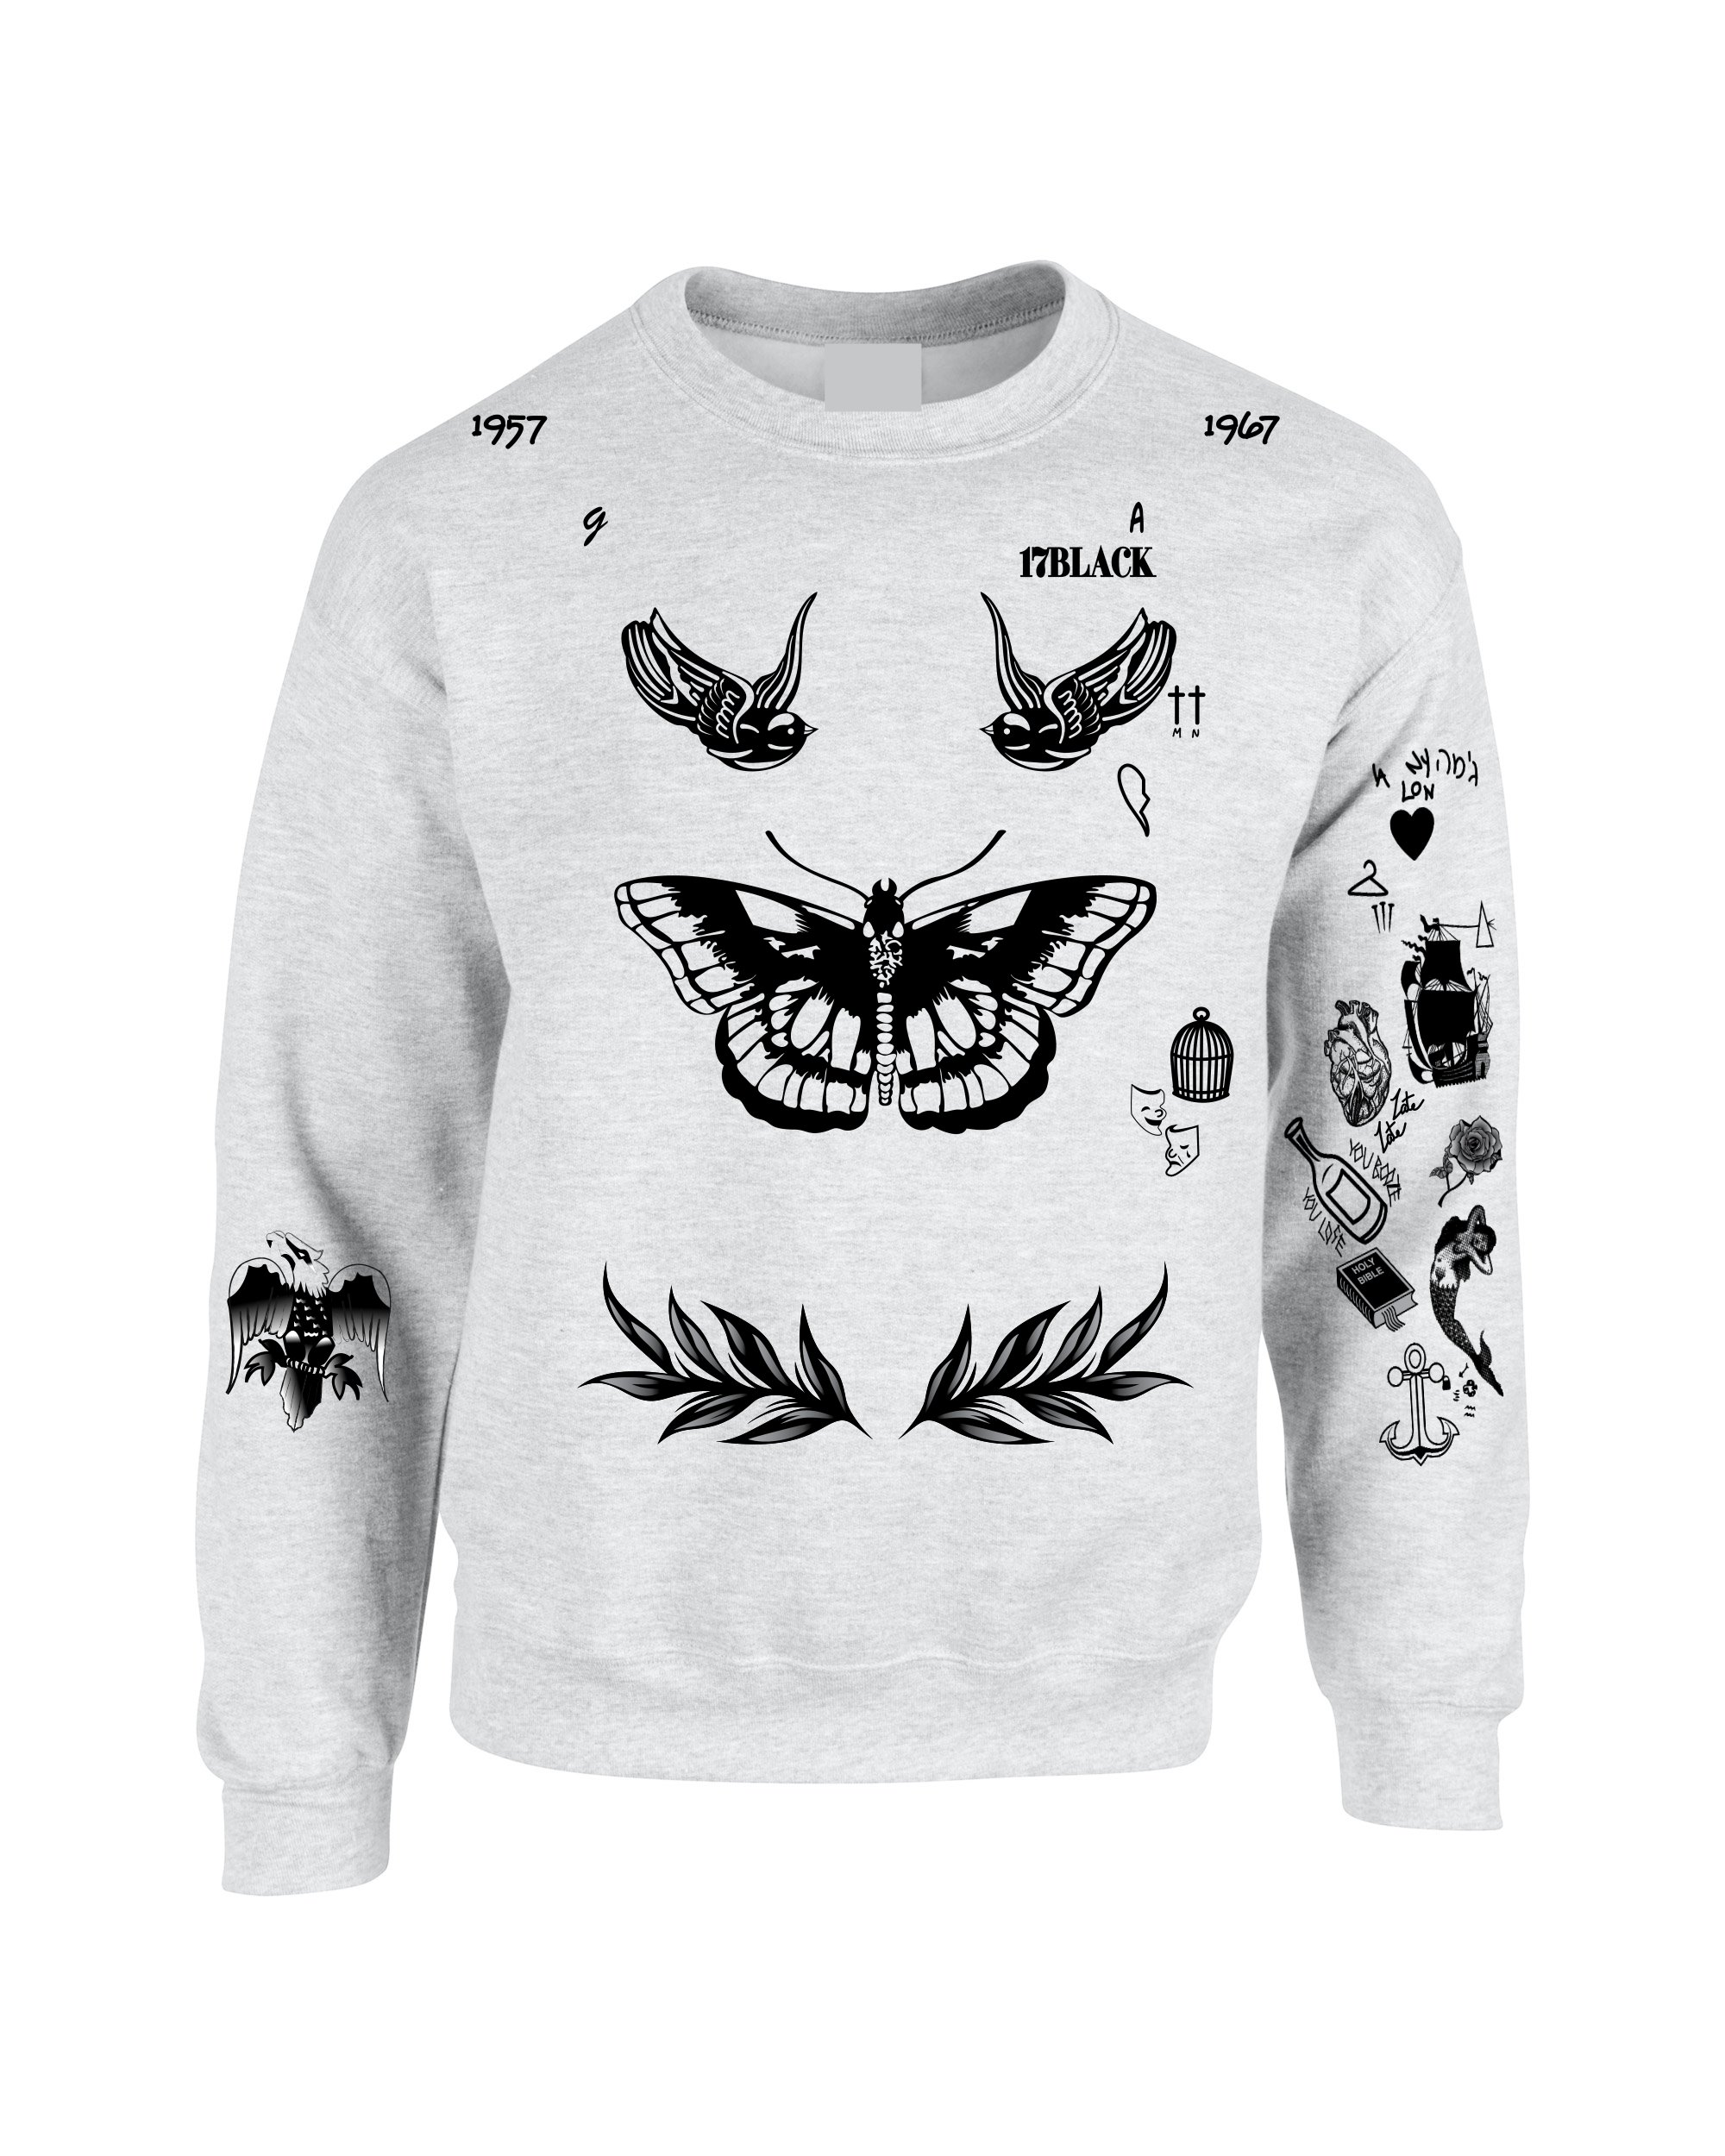 Allntrends Adult Sweatshirt Harry Tattoos 94 Cool Top Trendy Cute Gift (L, Ash)